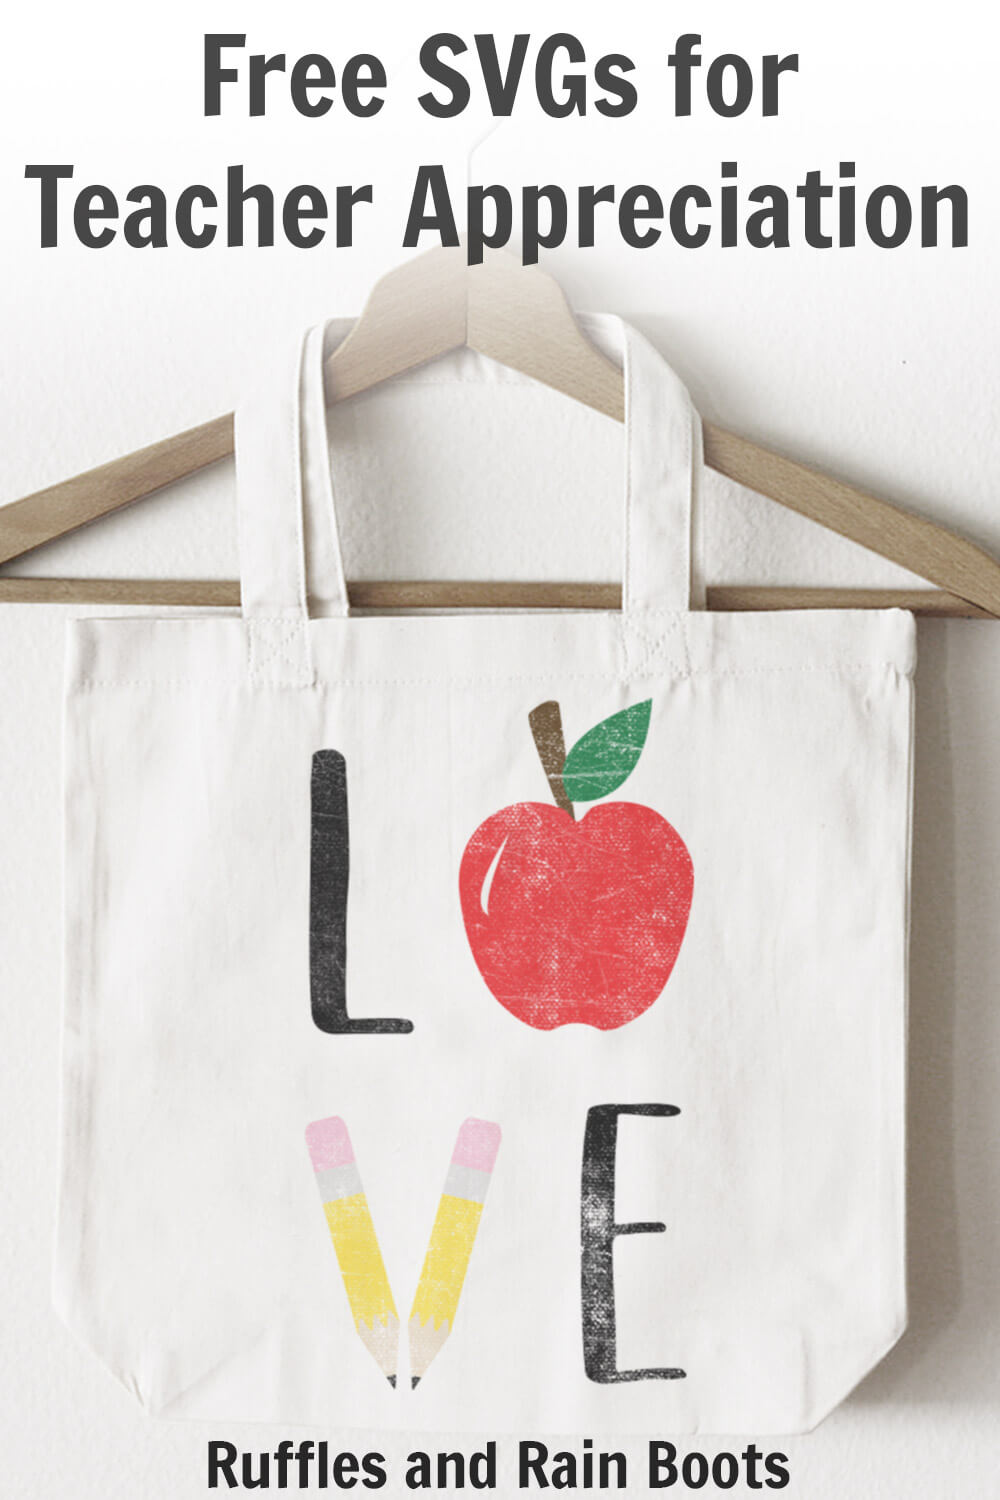 teacher appreciation svg on tote bag with text which reads free SVGs for teacher appreciation